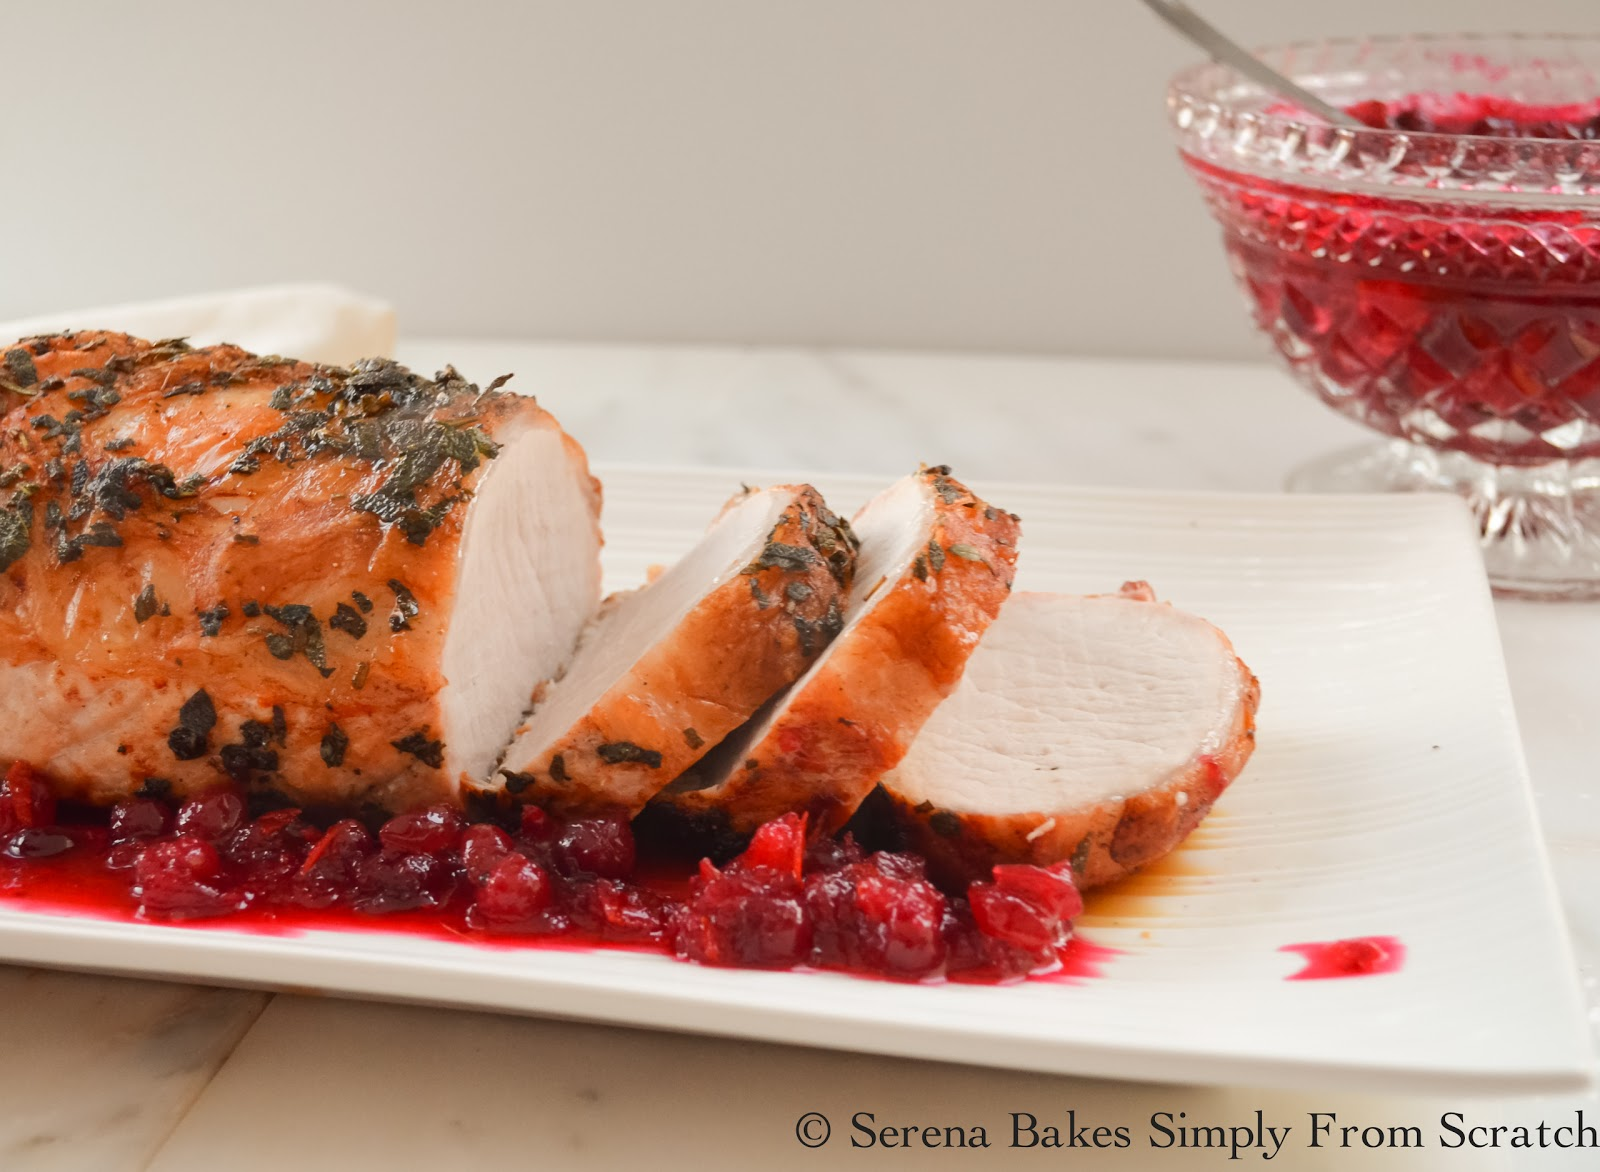 ... of the week. Rosemary Sage Pork Loin Roast is sure to be a favorite